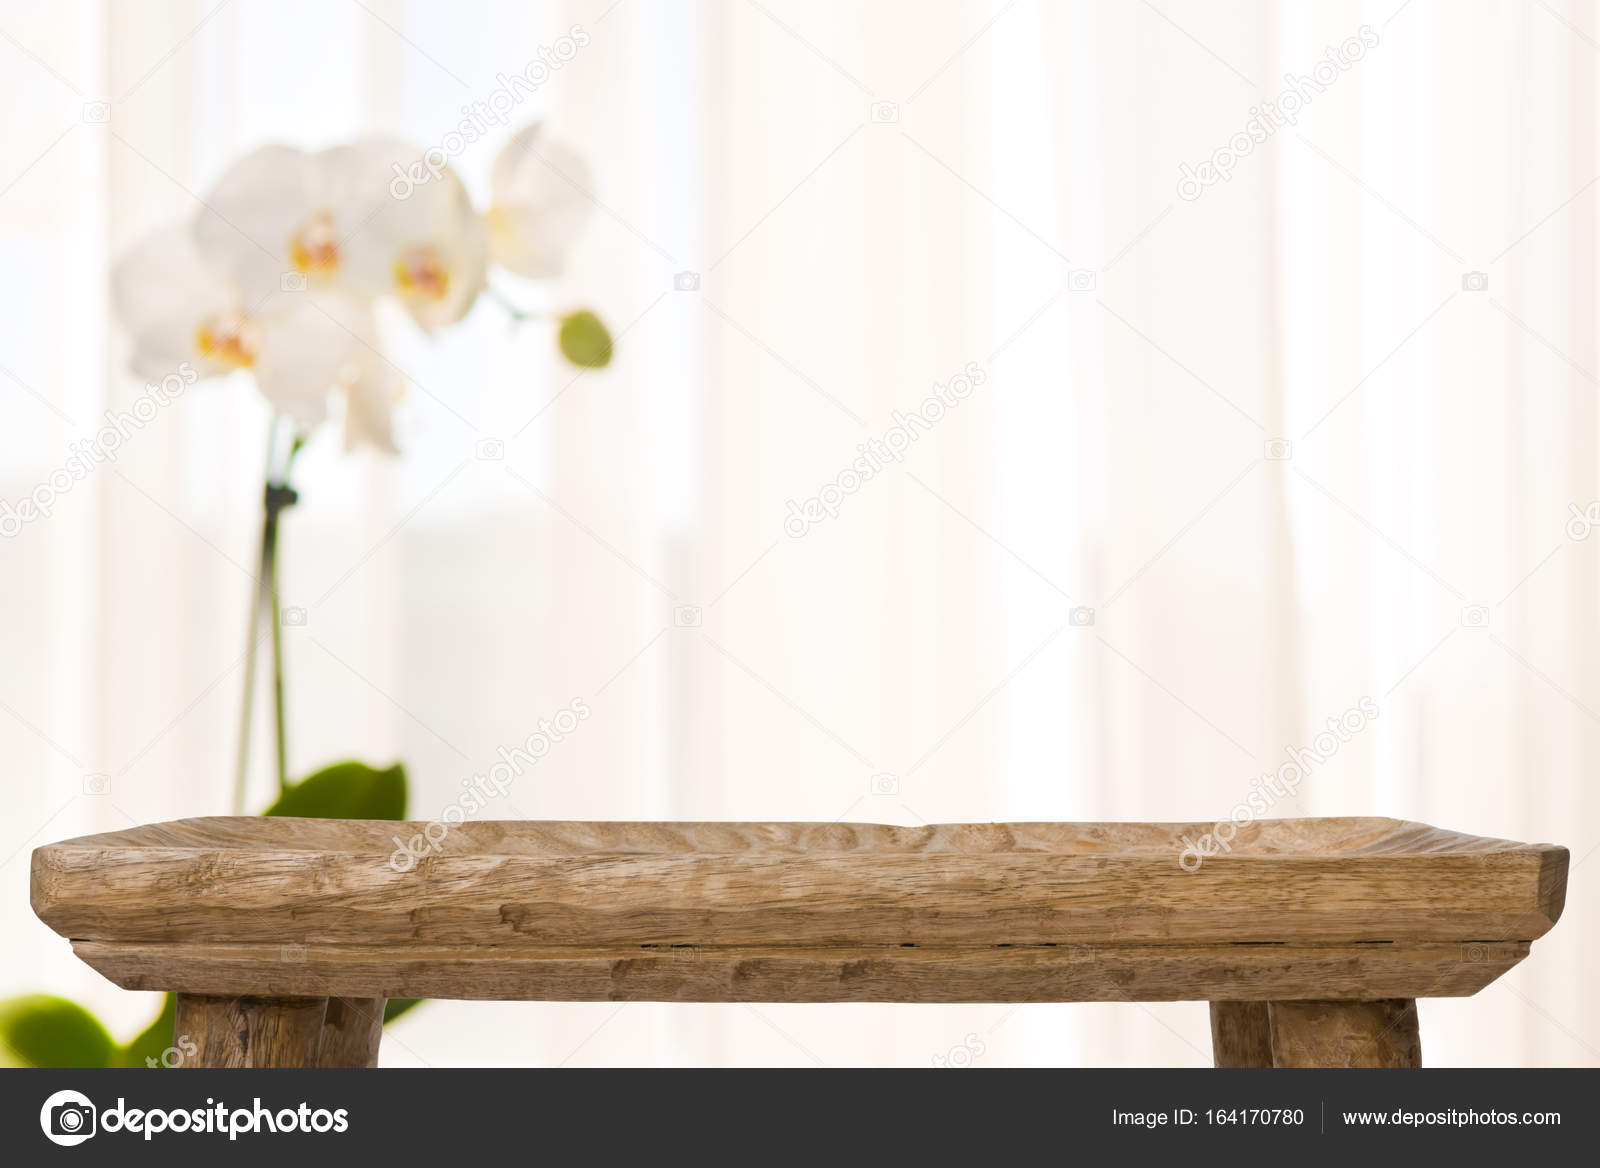 Wooden Bathroom Table On Abstract Blurred Background With Orchid Flower Stock Photo